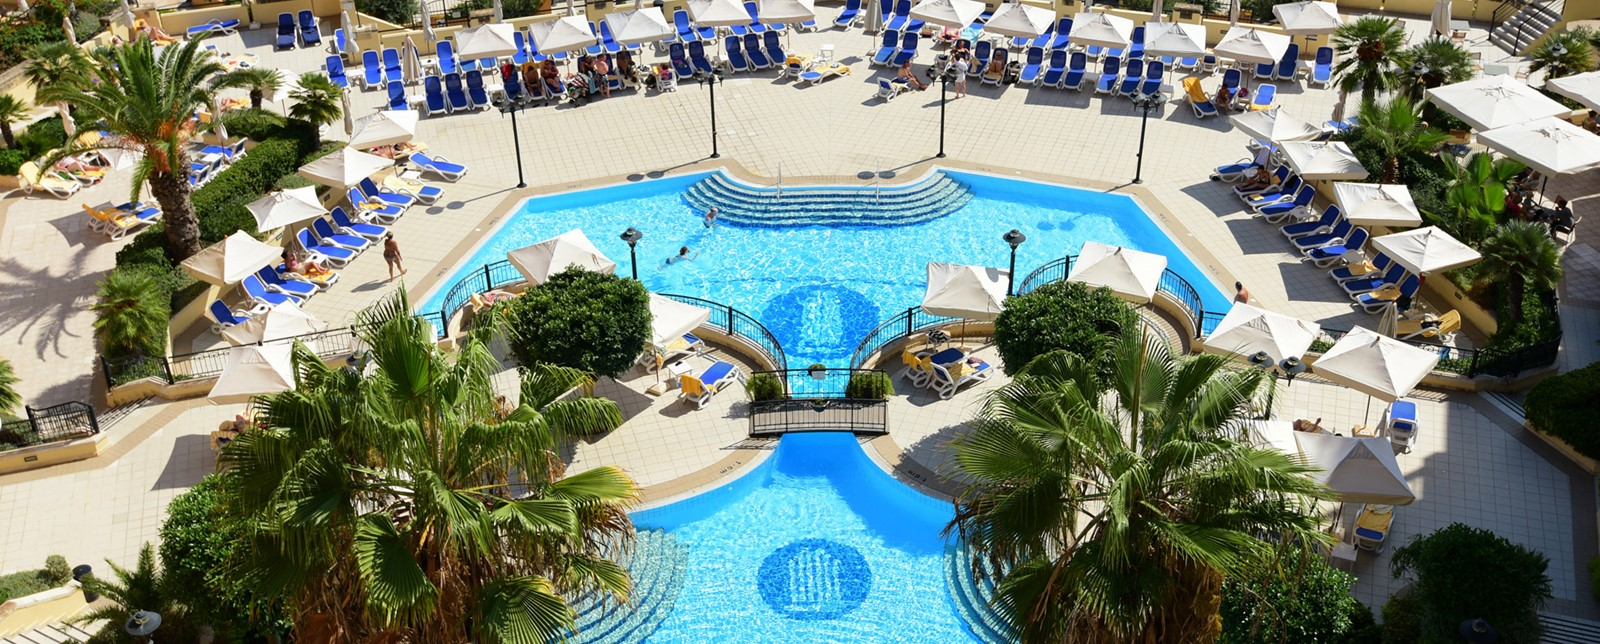 Corinthia St George's Bay Pools